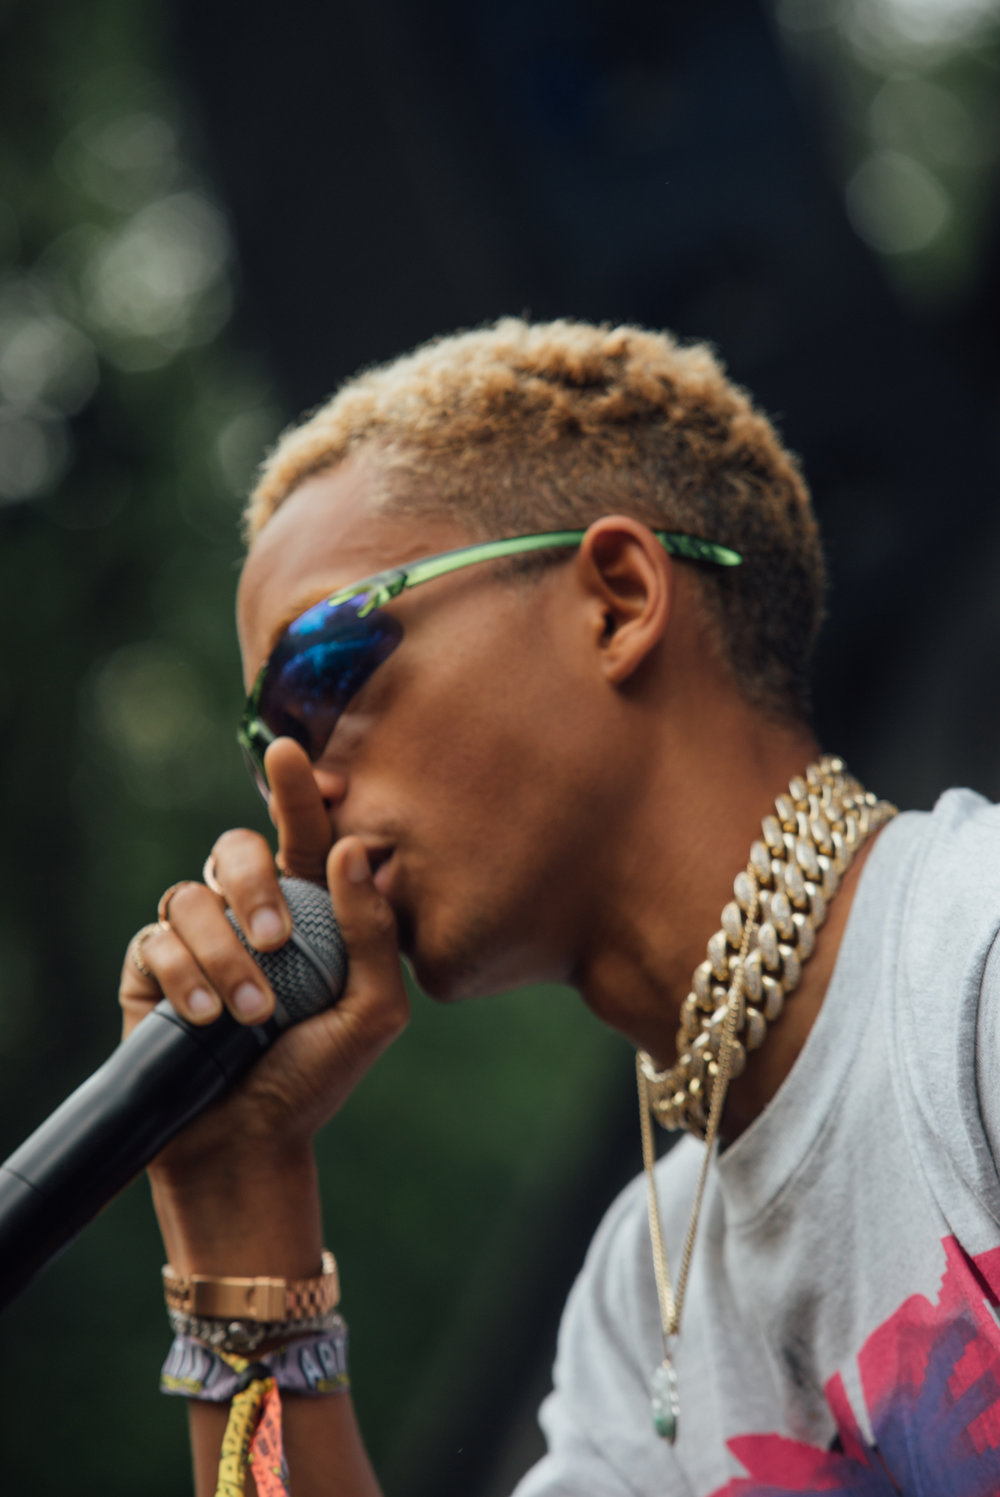 LOLLAPALOOZA LIVE: Jaden Smith at American Eagle Stage